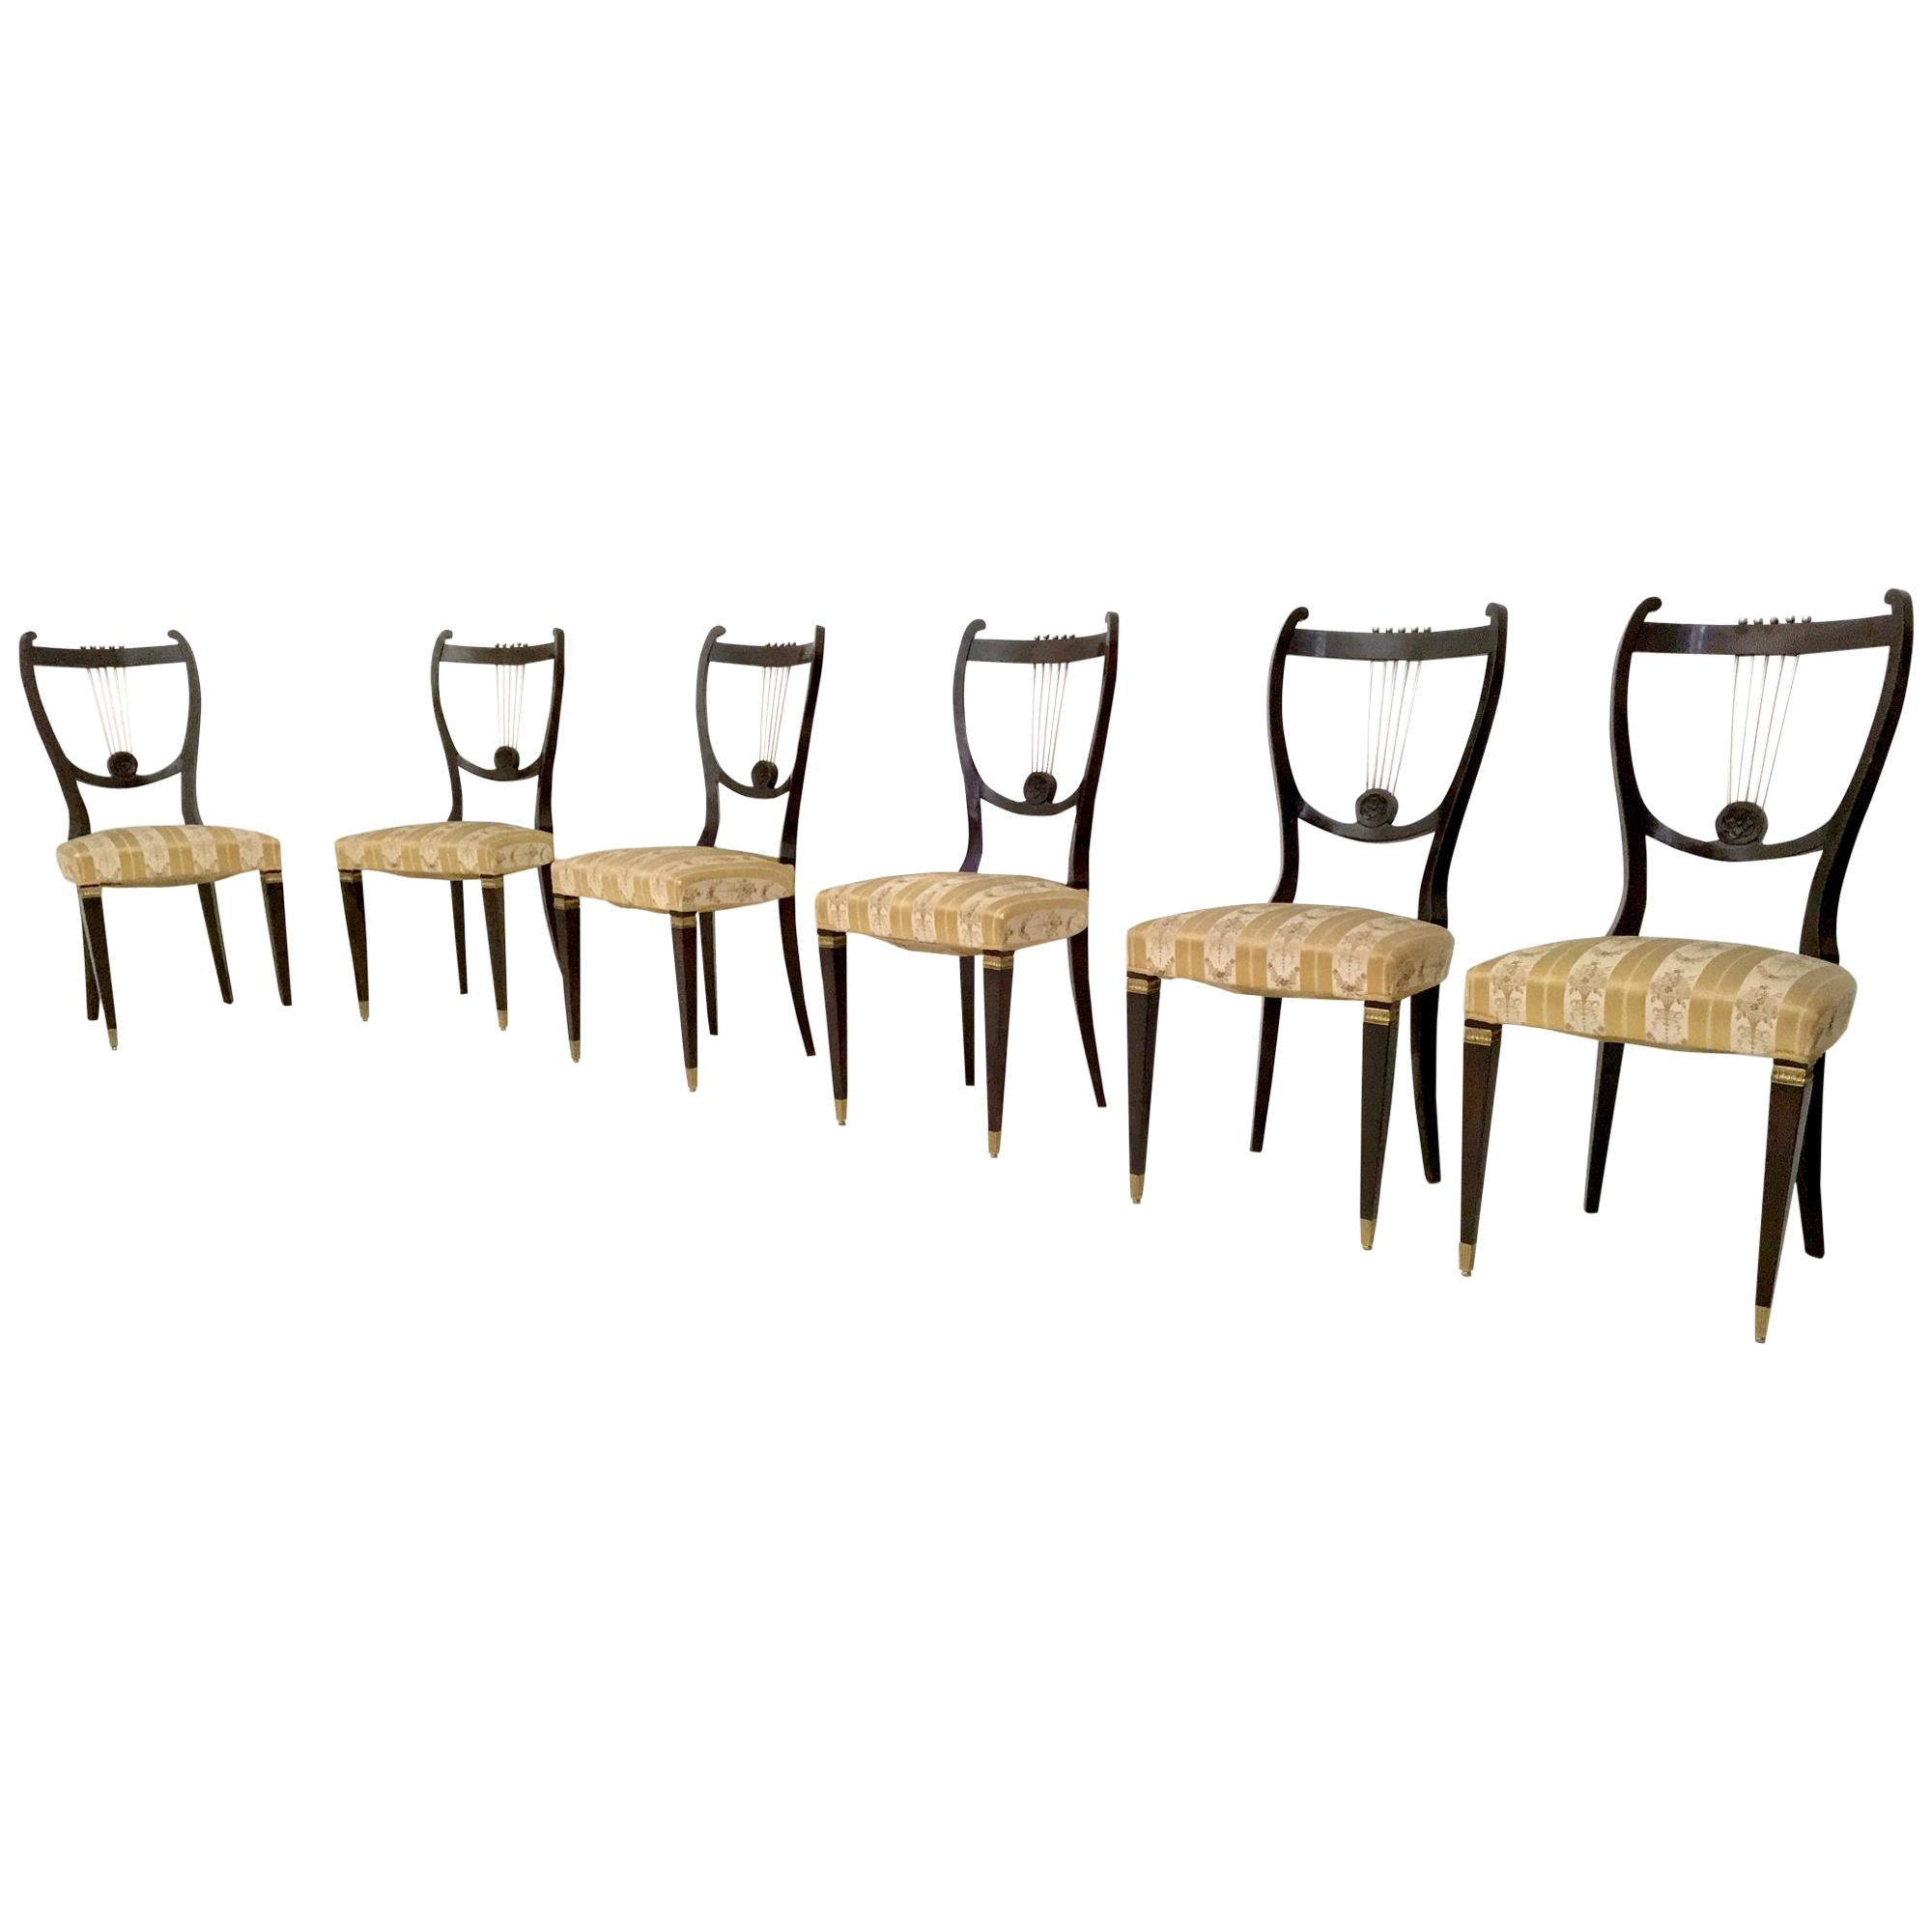 Set of Six Beech and Brass Dining Chairs, Italy, 1940s-1950s